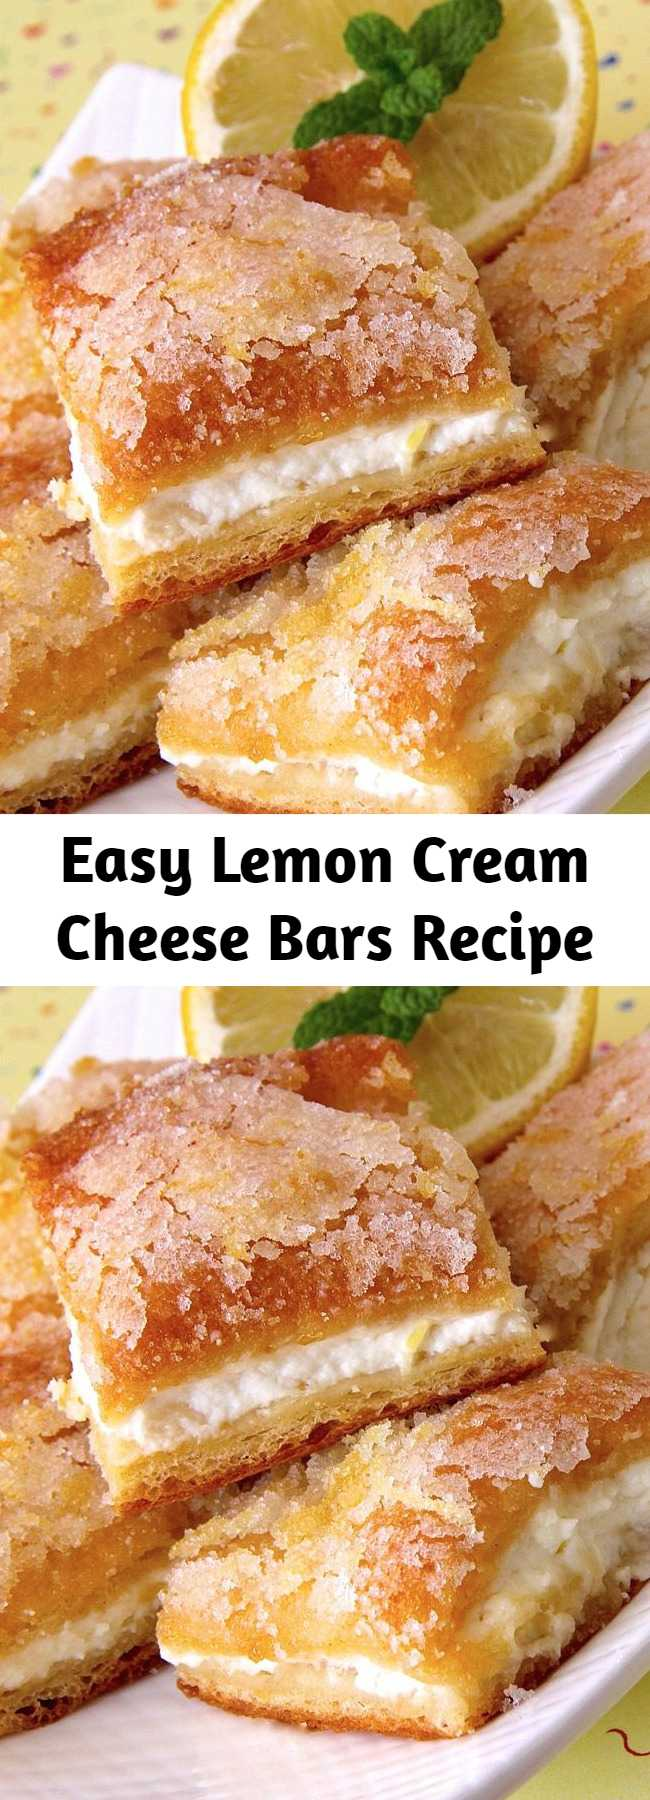 Easy Lemon Cream Cheese Bars Recipe - Lemon Cream Cheese Bars are tangy, sweet, soft, chewy and perfectly delicious. These tasty treats are always a crowd pleaser!